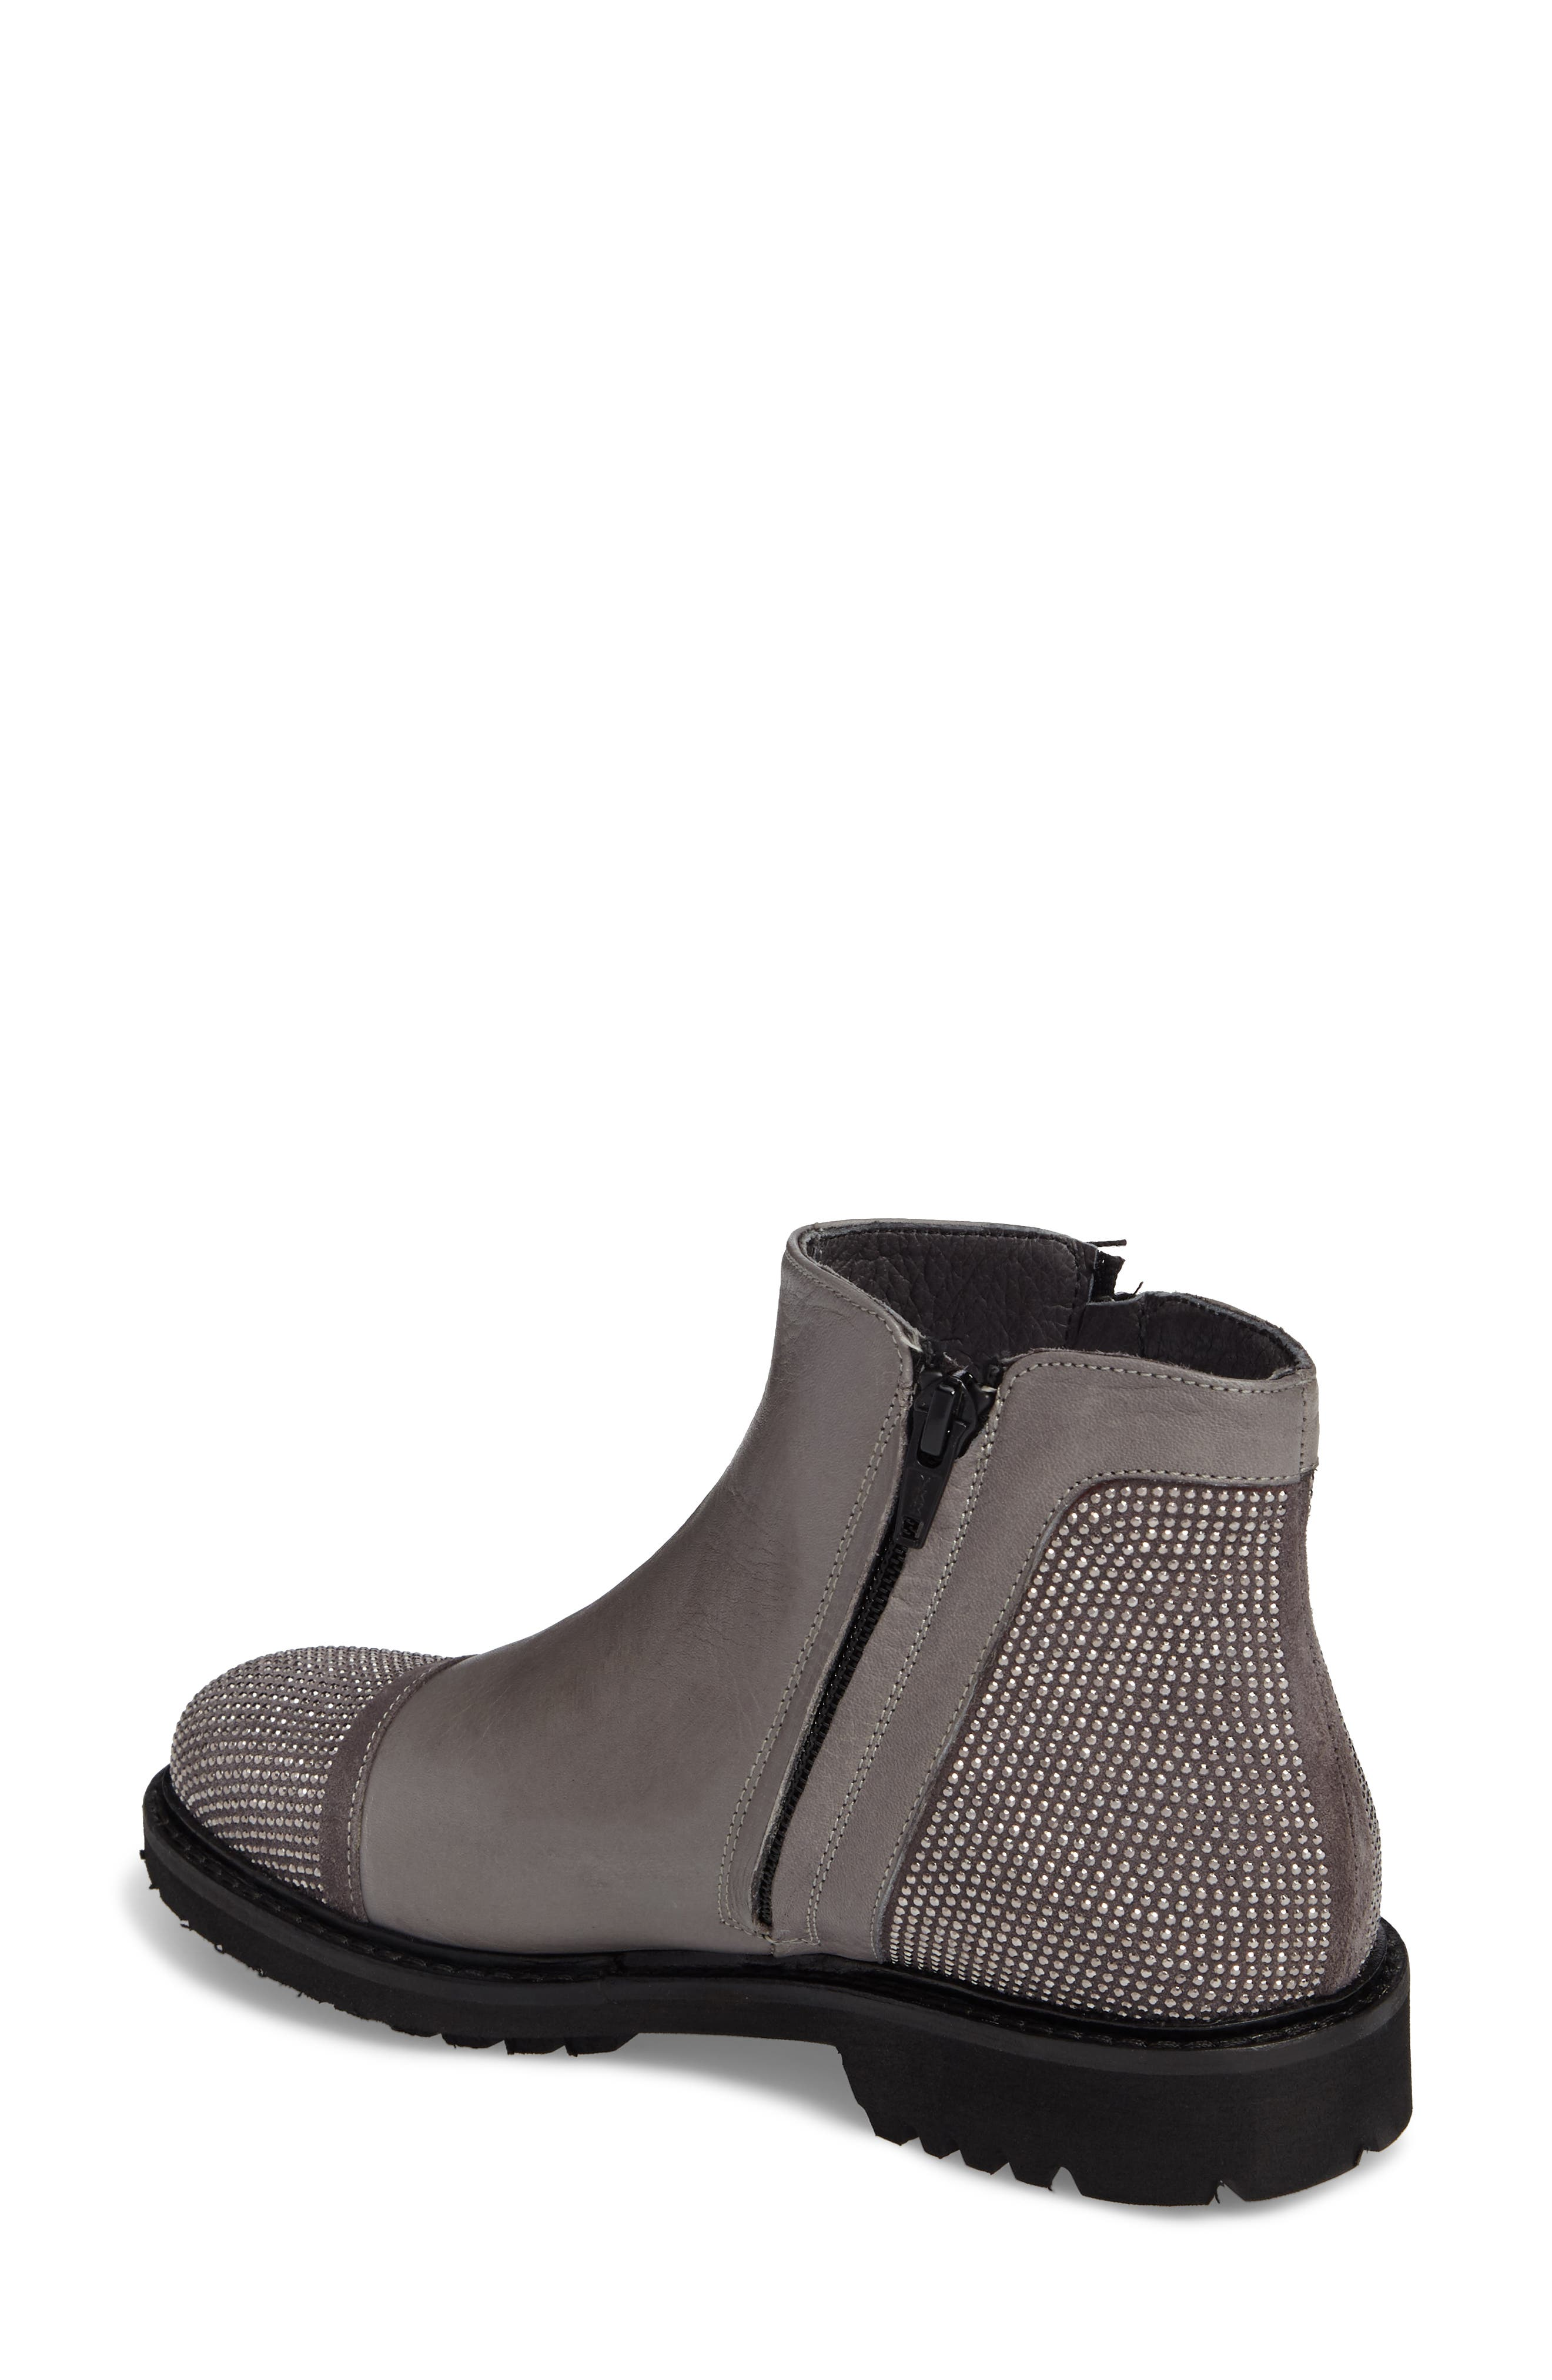 Alternate Image 2  - Sheridan Mia Viva Ankle Boot (Women)